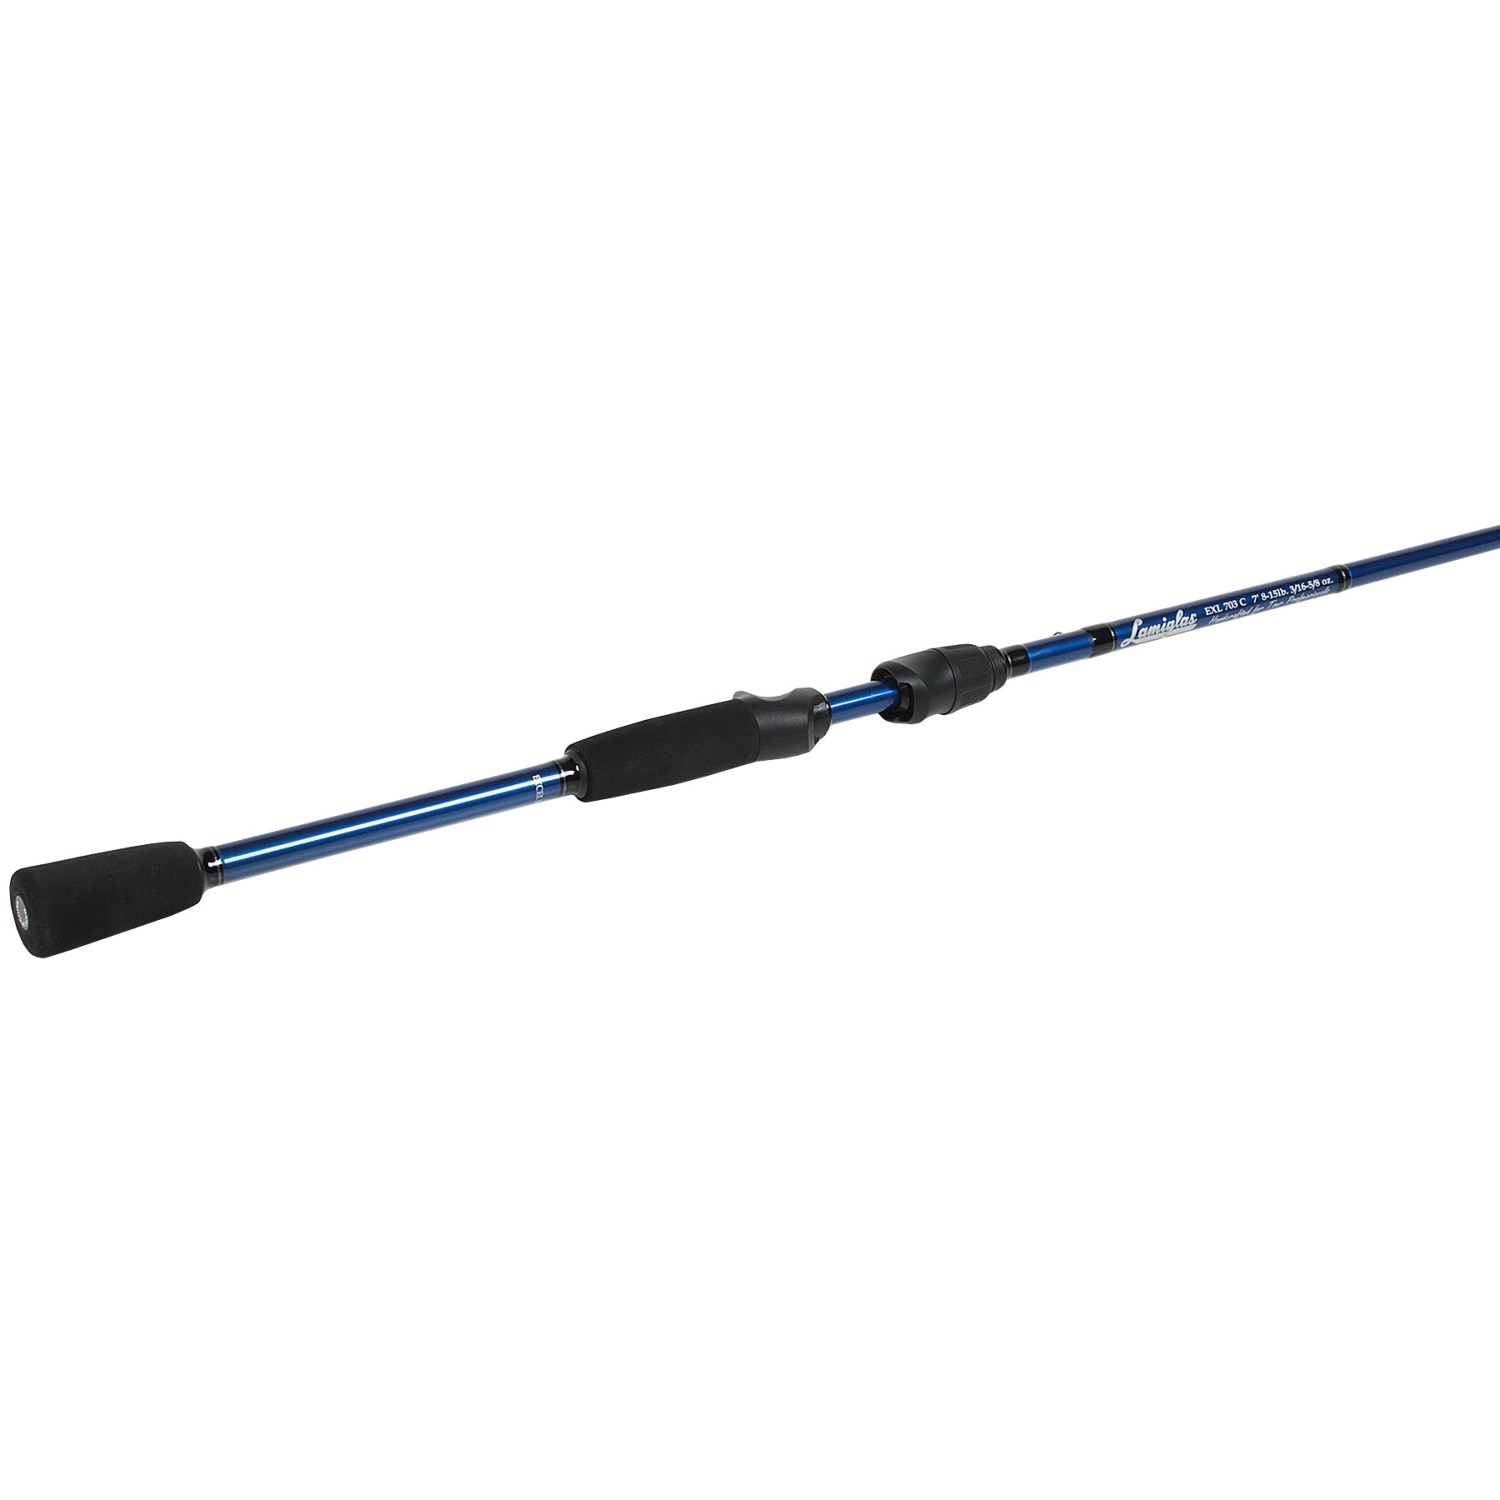 Lamiglas excel ii one piece bass casting rod 9096j save 25 for Lamiglas fishing rods